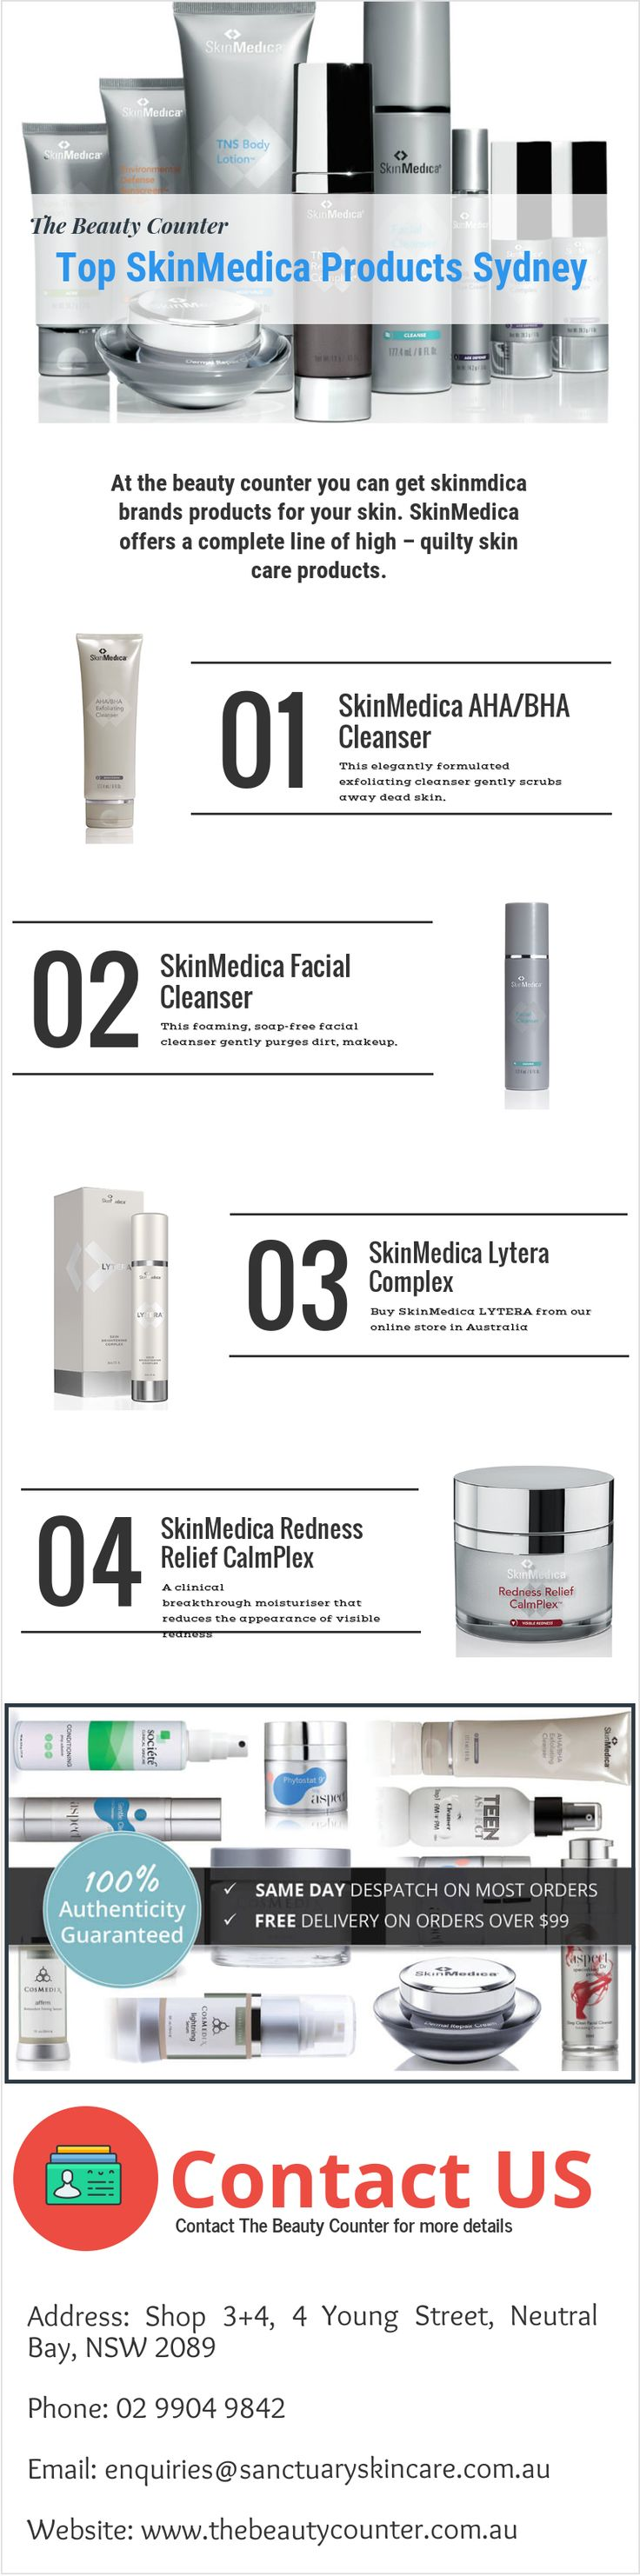 The #Beauty counter offers a complete range of high quality #skinmedica products in #Sydney. You can place your order through our website thebeautycounter.com.au. #infographics